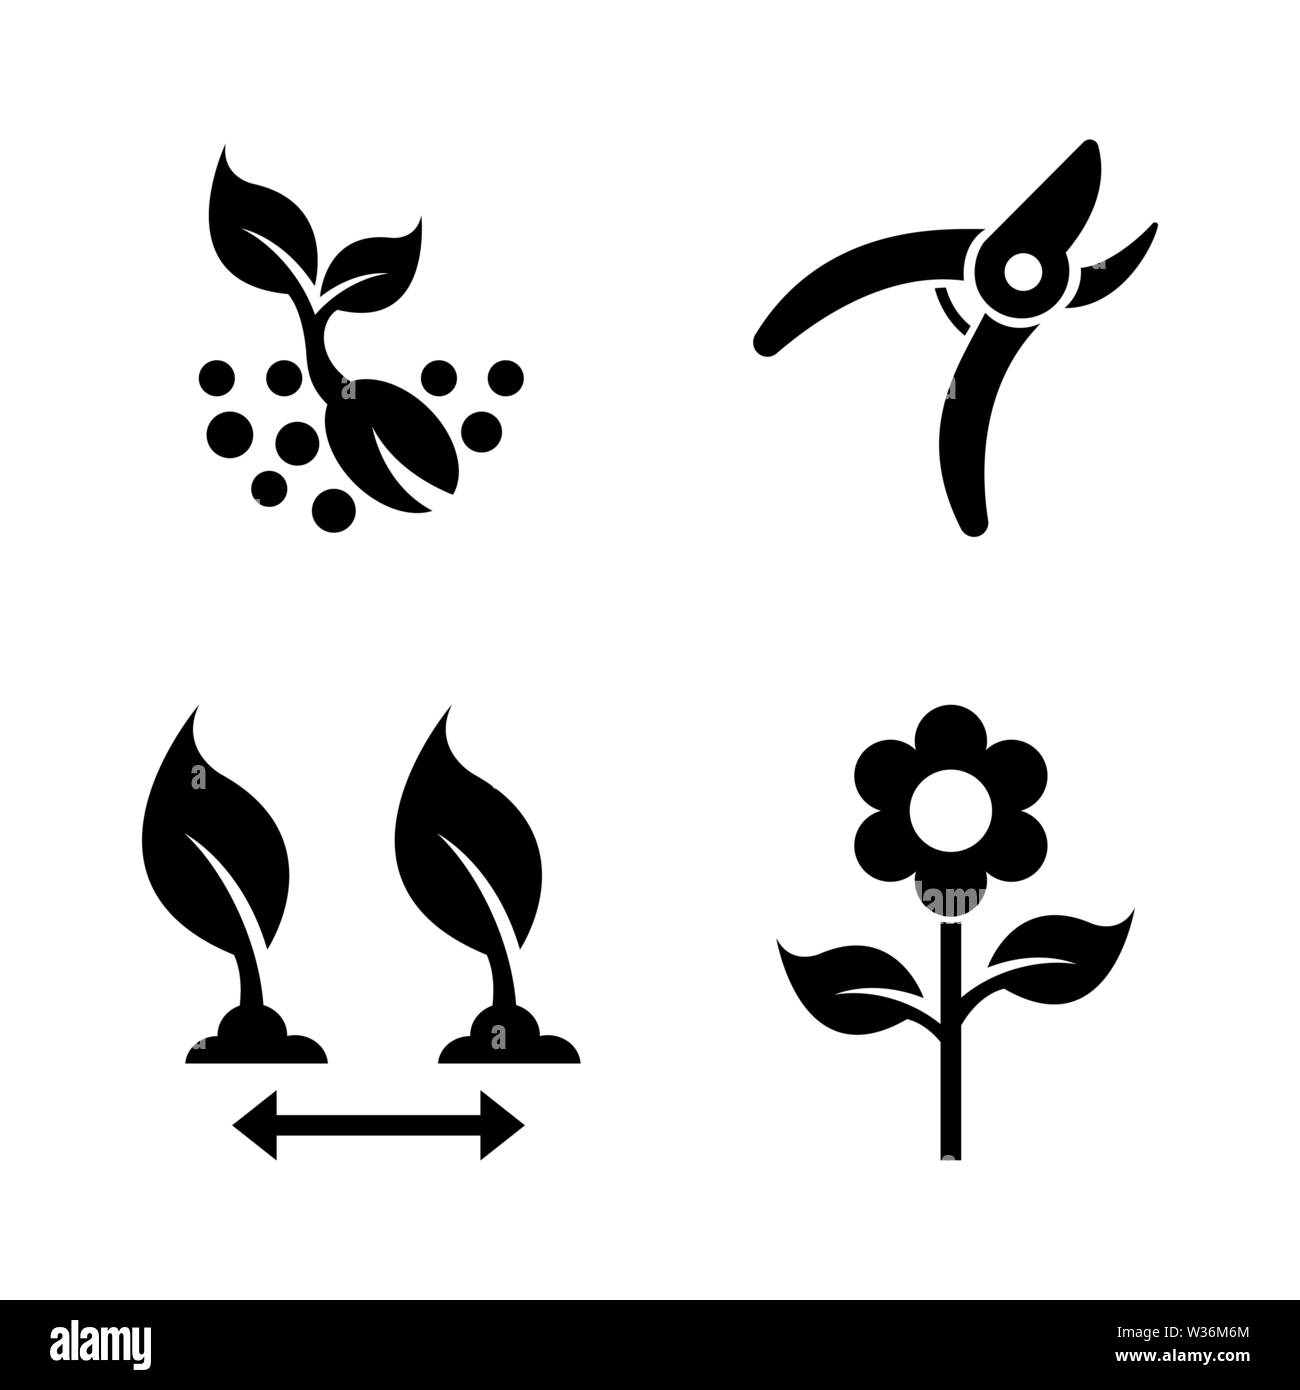 Seedling, Gardening. Simple Related Vector Icons Set for Video, Mobile Apps, Web Sites, Print Projects and Your Design. Seedling, Gardening icon Black - Stock Vector